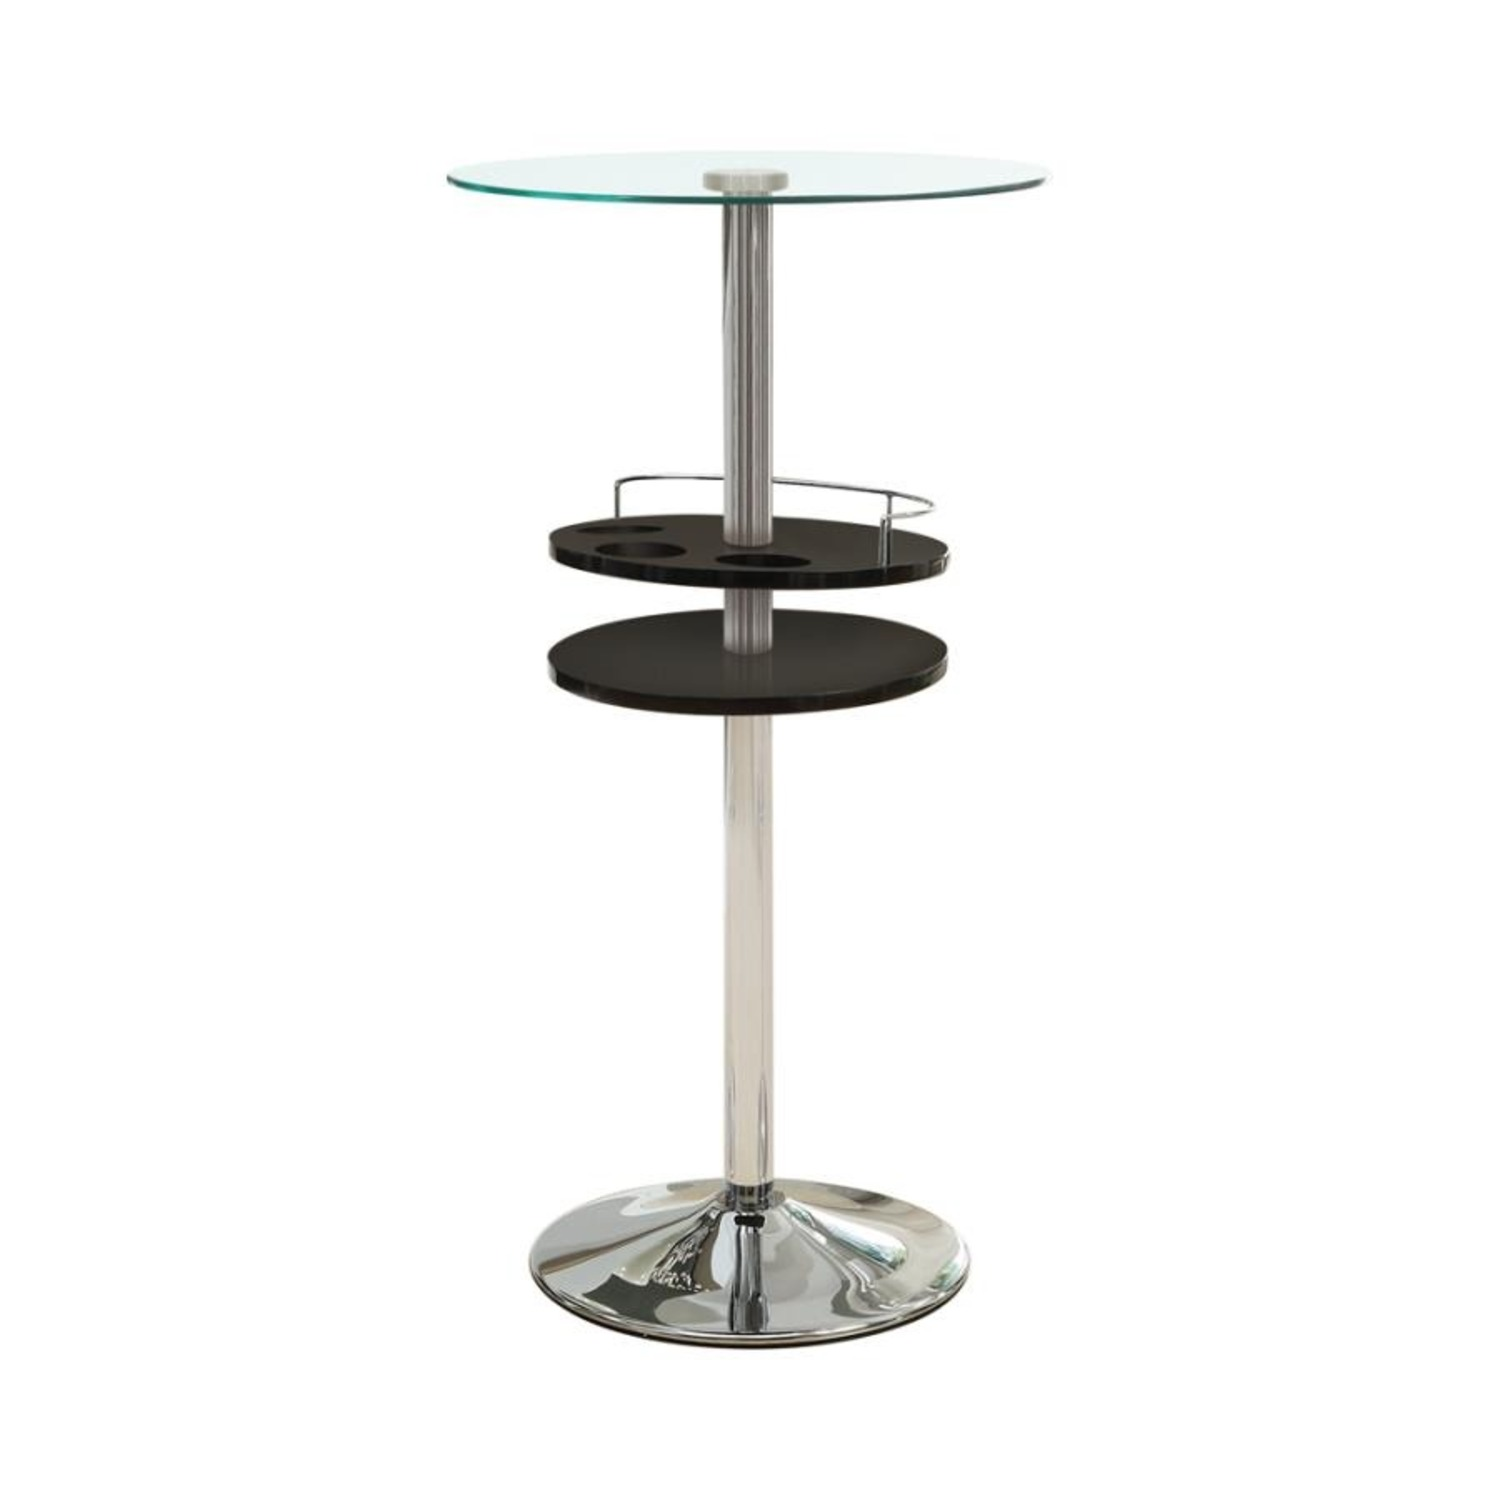 Bar Table In Glossy Black W/ Tall Pedestal Base - image-0